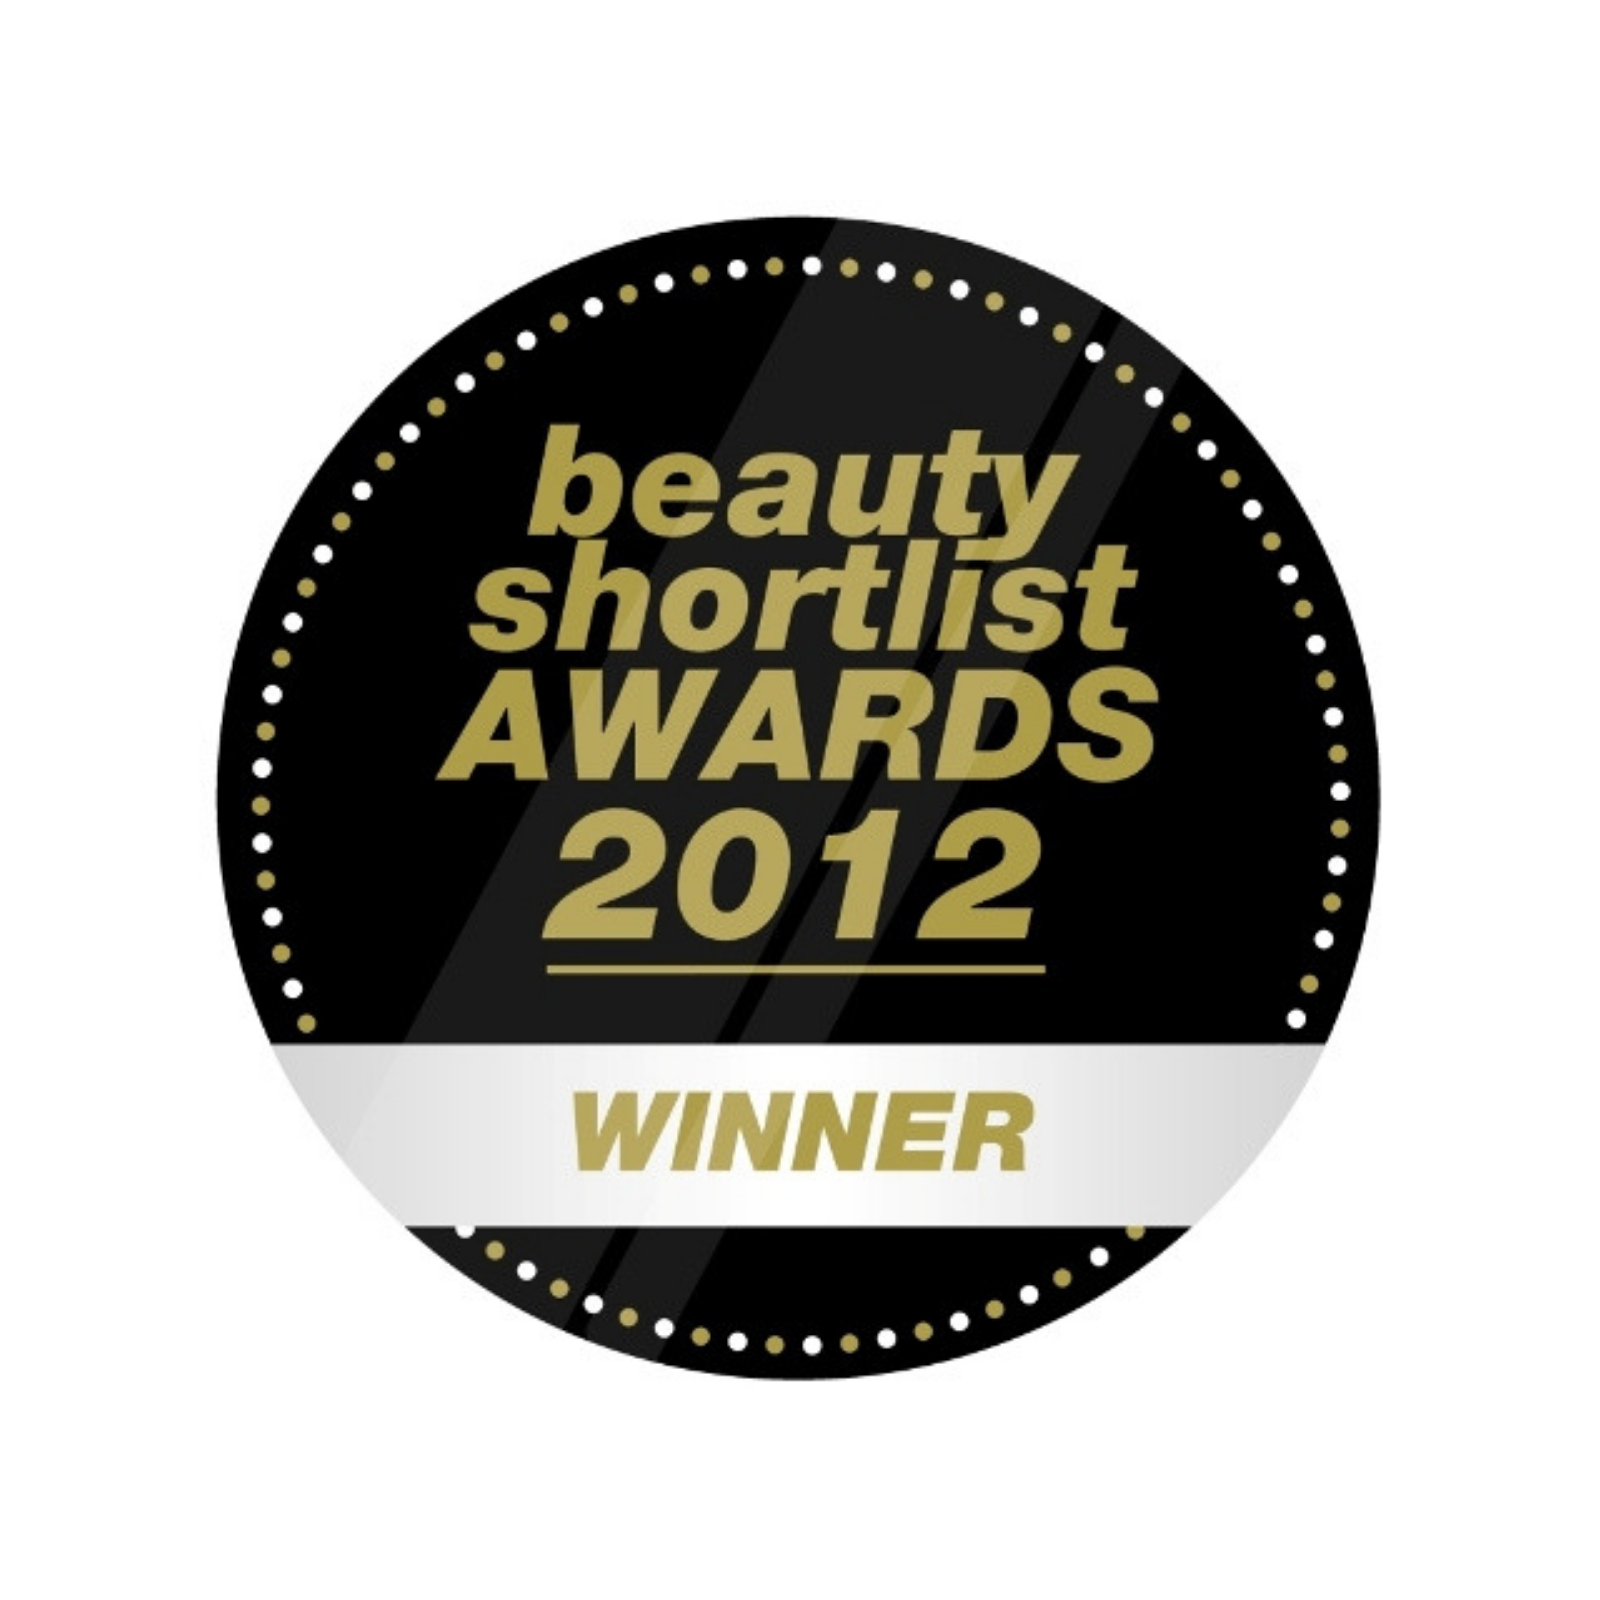 Winner of Best Hair Product in Beauty Shortlist Awards; Ogario Restore and Shine Hair Masque